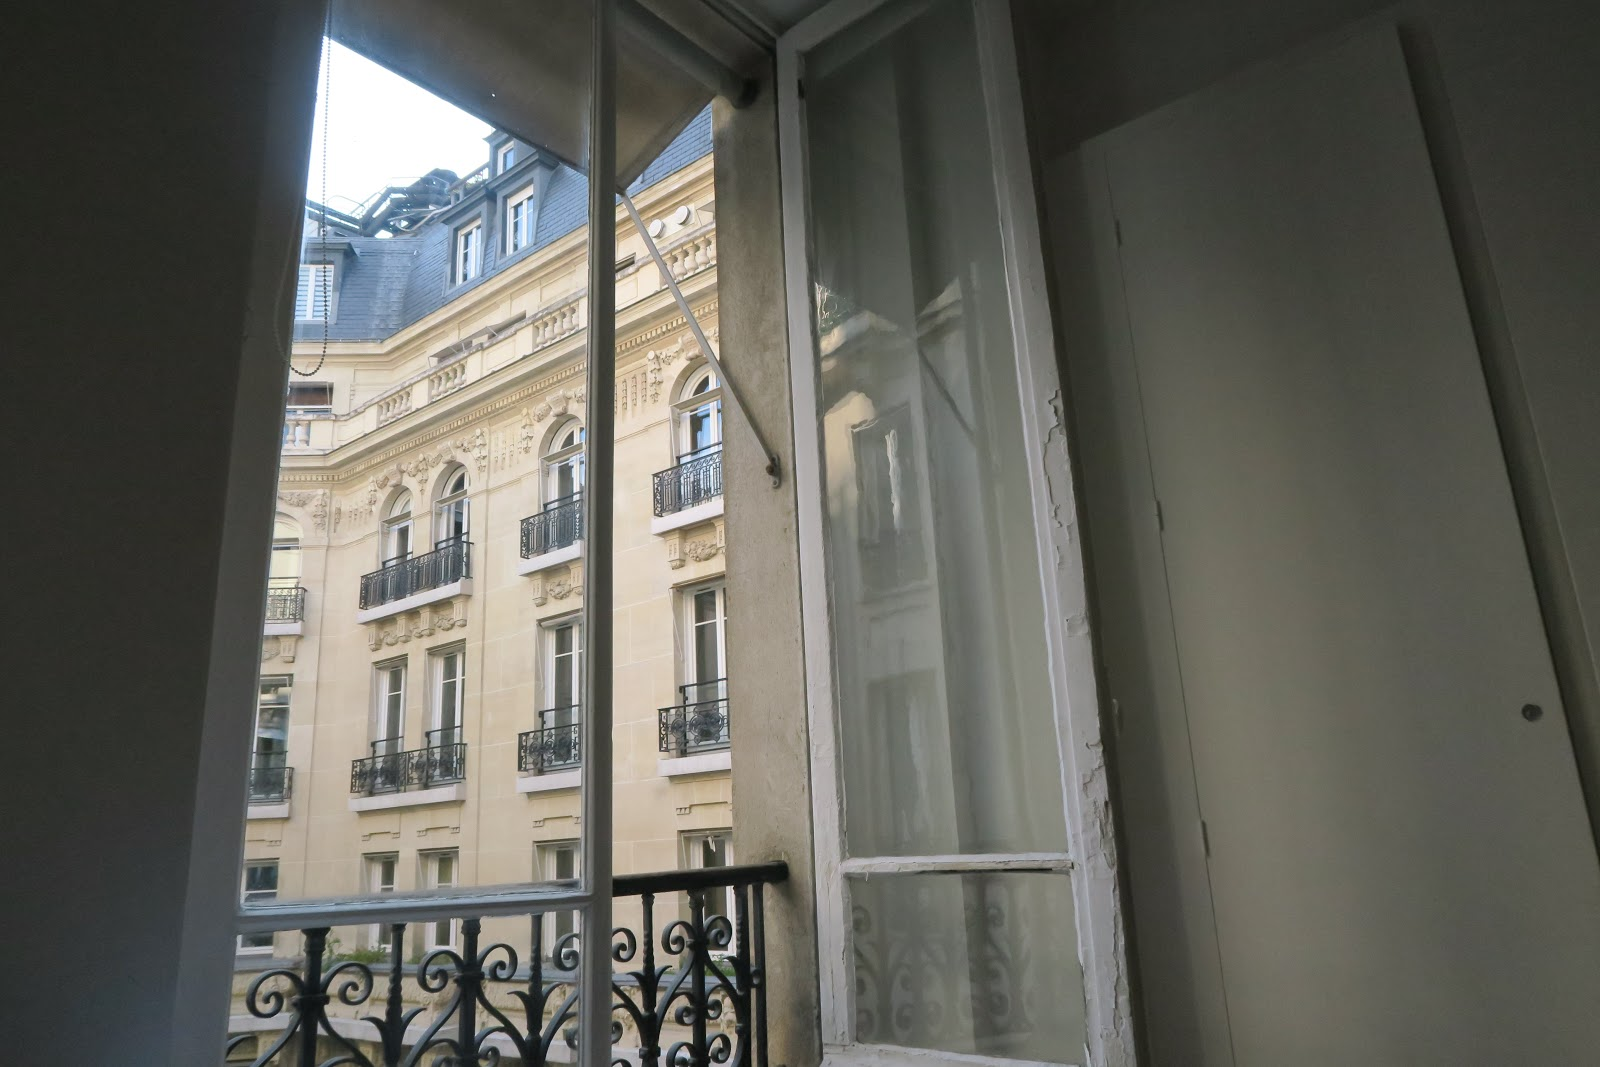 View from the balcony of a Parisian apartment from our trip to Paris